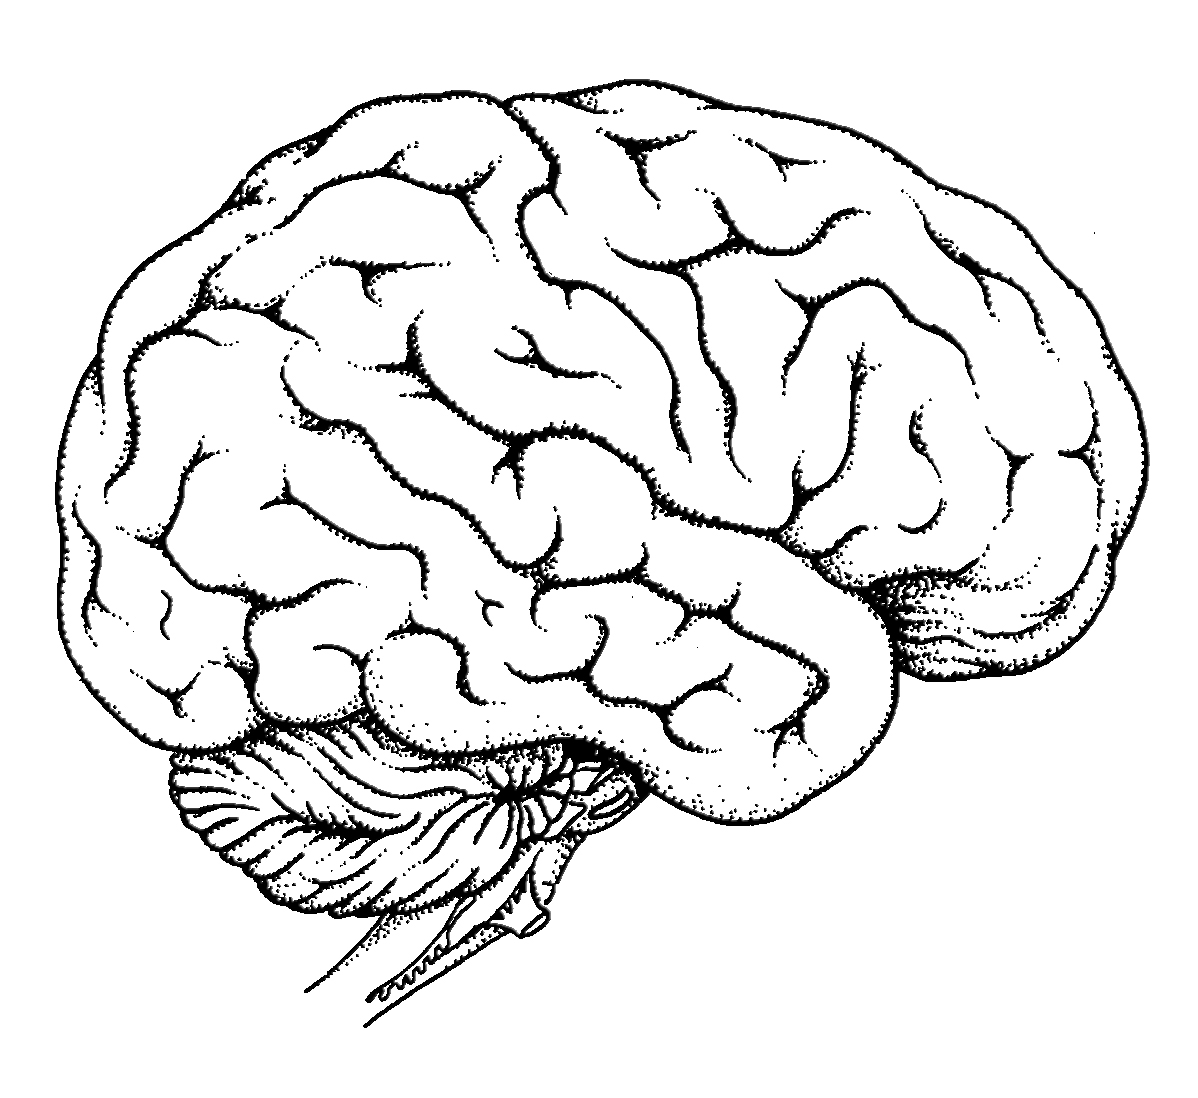 1198x1098 Brain Coloring Page With Human